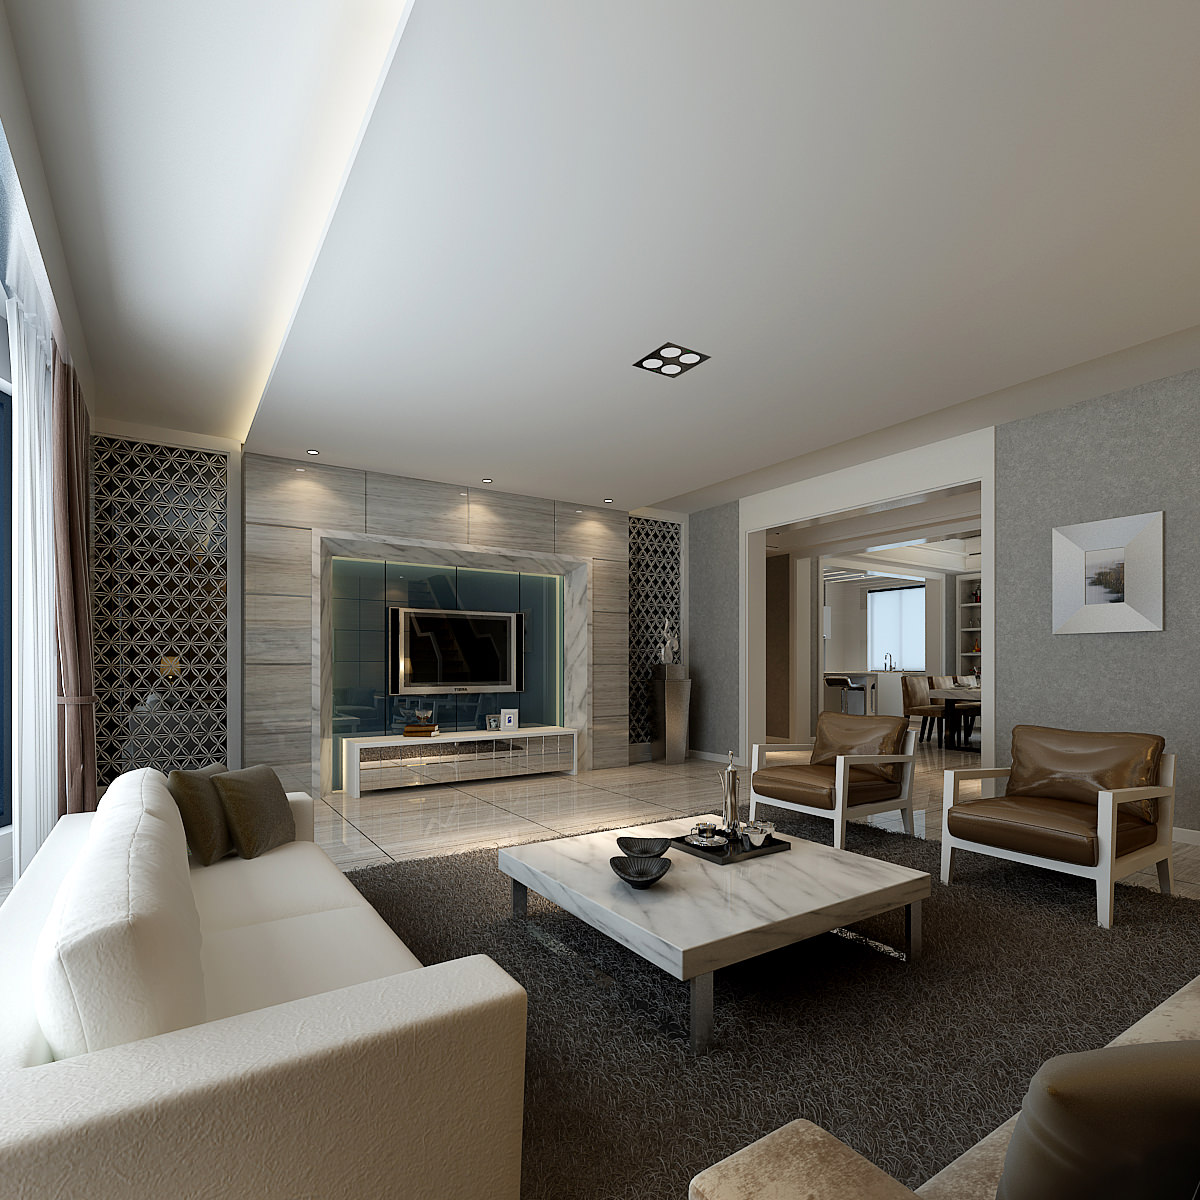 Modern Living Room With Luxury Furniture 3D Model .max   CGTrader.com